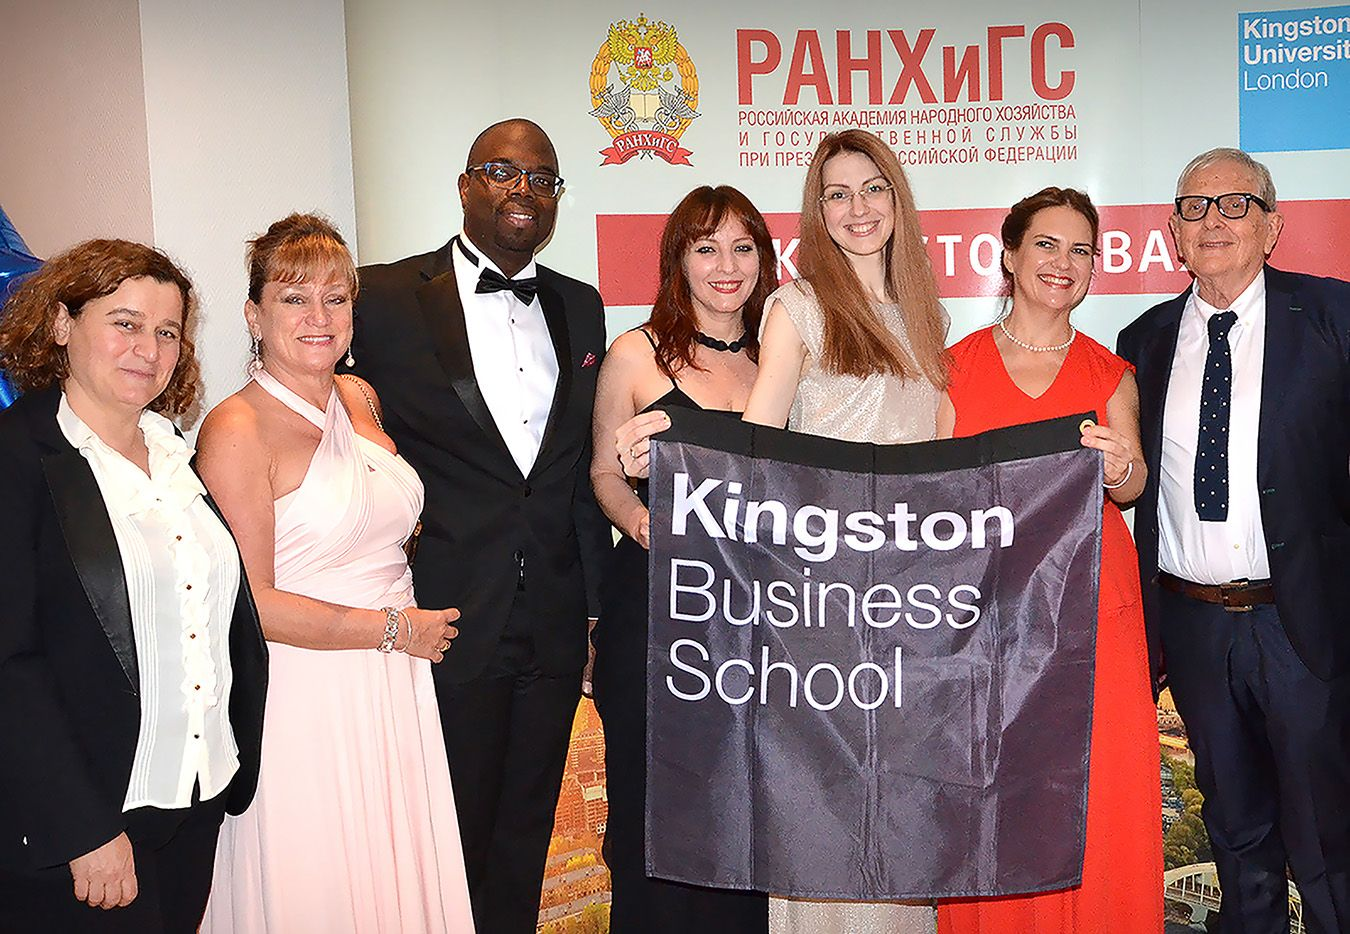 A photo of staff from Kingston Business School and from RANEPA at the Moscow MBA 20th anniversary celebration.